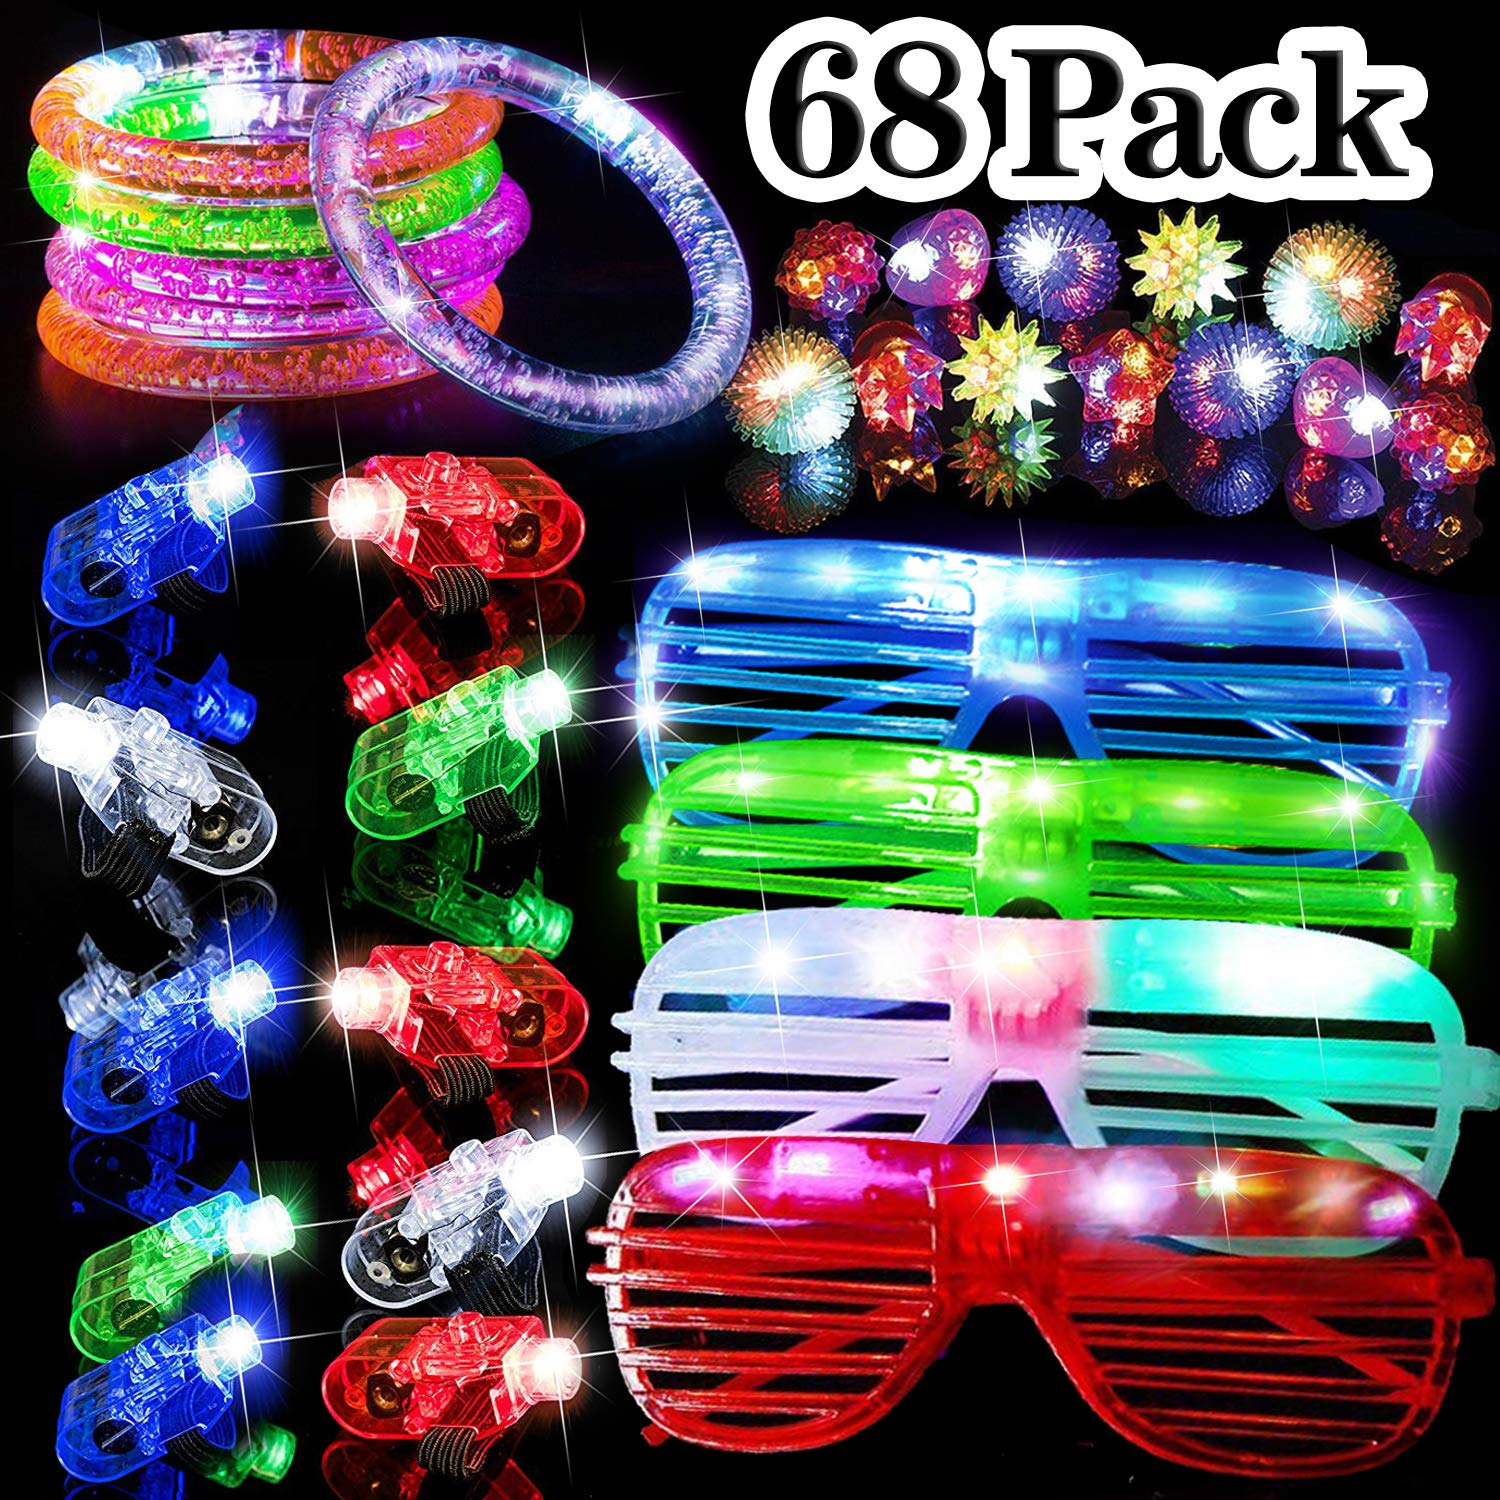 68 Pack LED Light Up Toys Halloween LED Glow Party Favors for Kids Glow in the Dark Party Supplies 4 Flashing Slotted Shades Glasses 10 Glow Rings 50 LED Finger Lights 5 LED Bracelets Christmas Gift by Godlike (Image #1)